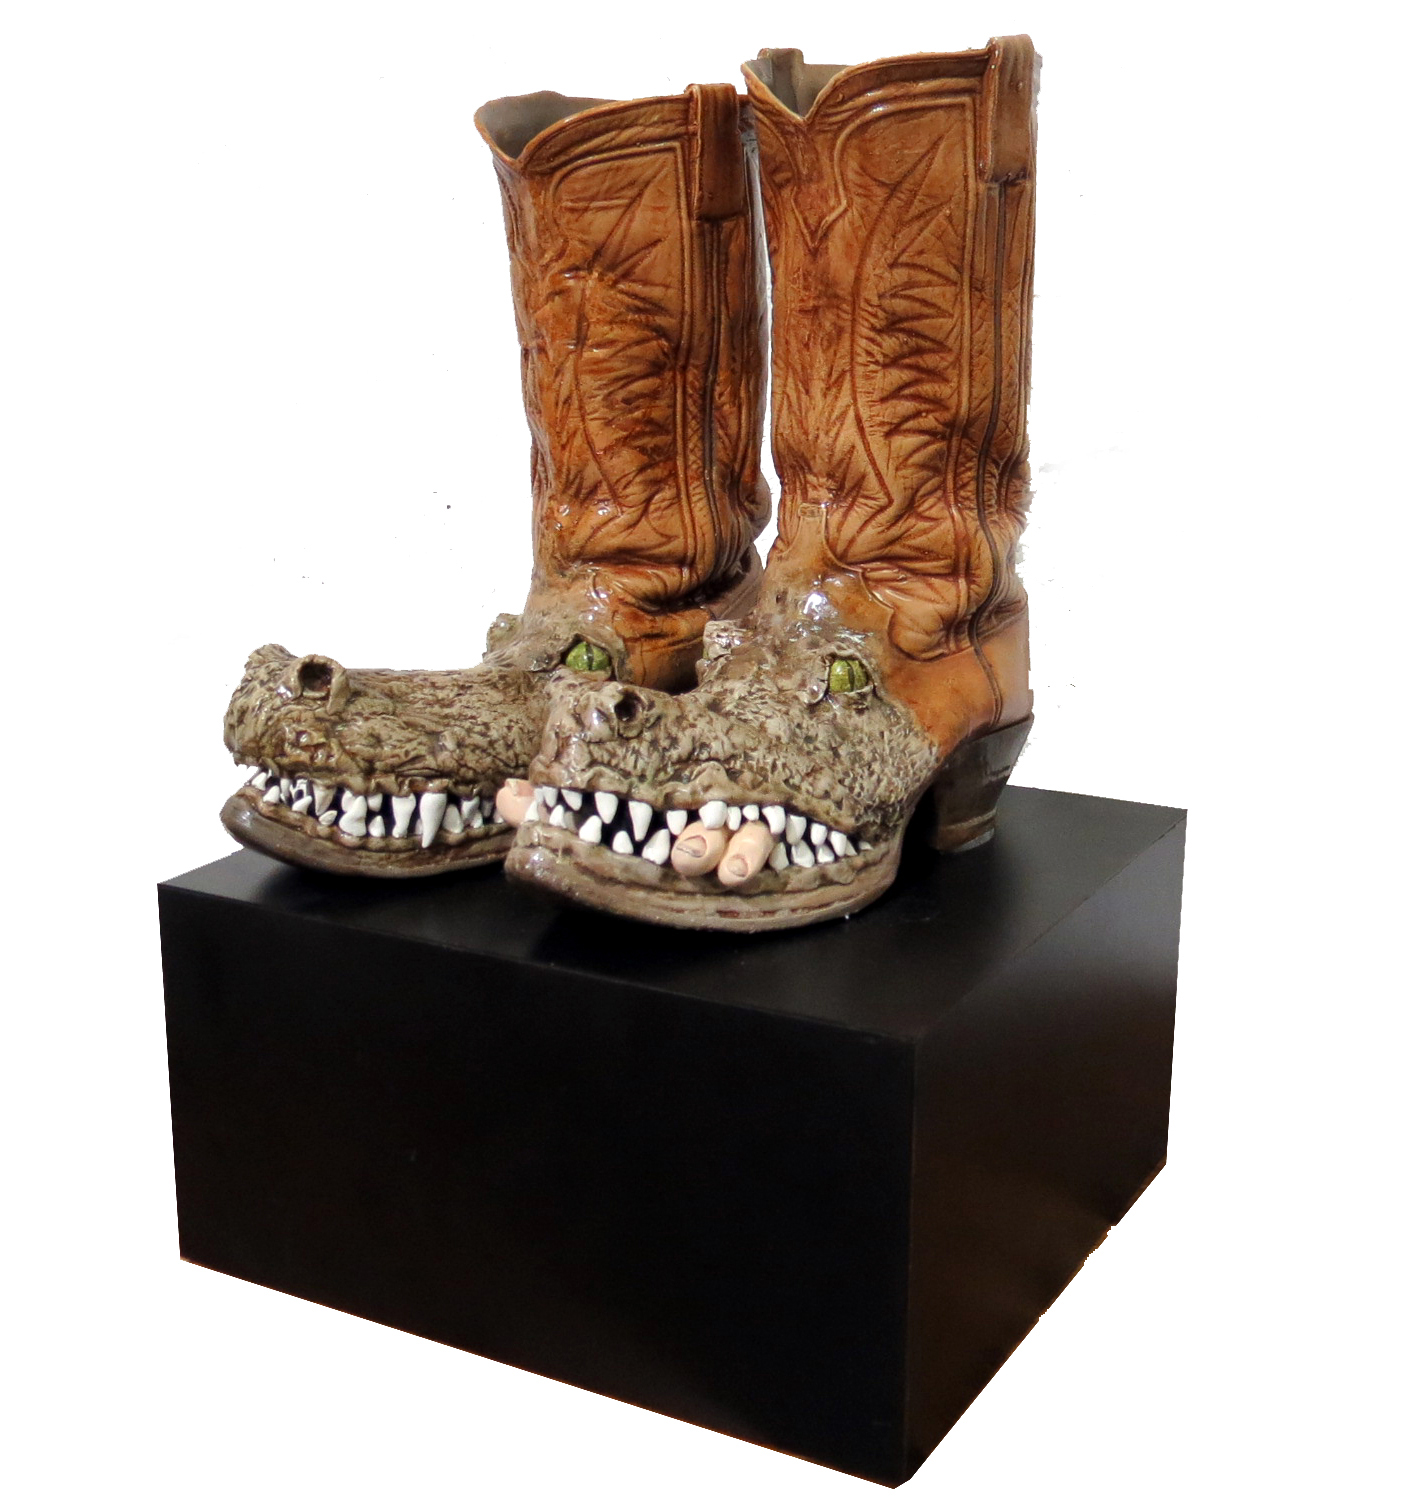 Genuine Alligator Boots Sculpture By Bob Howell Modernism